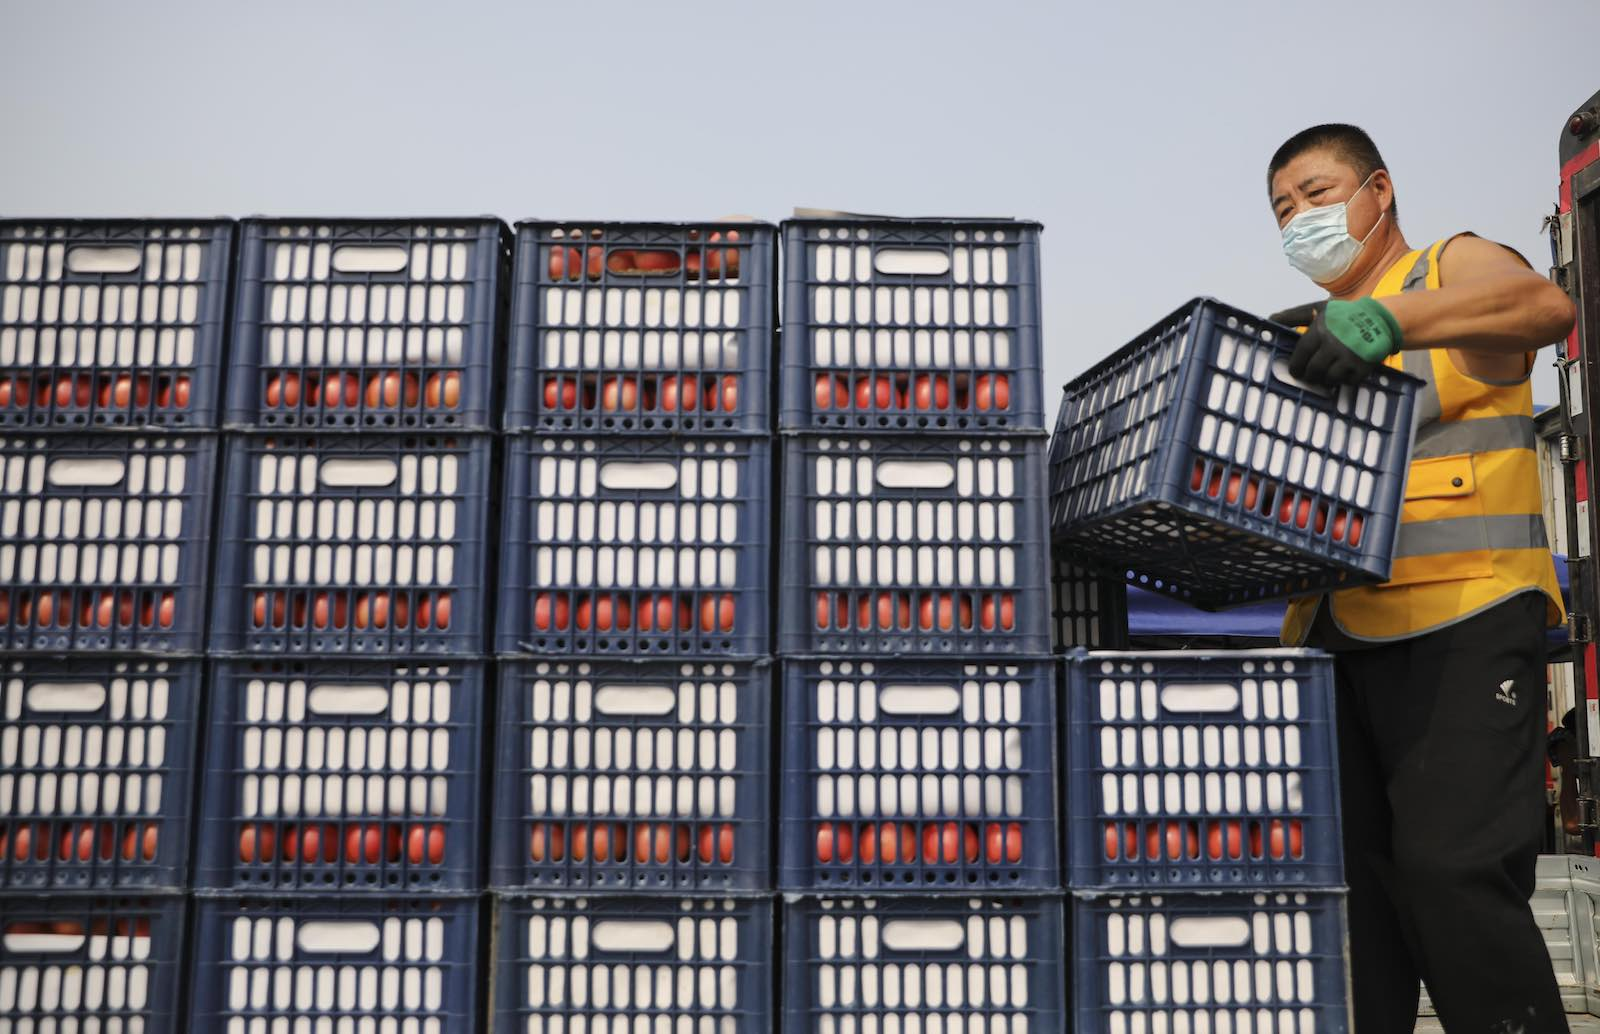 Xinfadi wholesale market, Beijing, China (Zhao Jun/China News Service via Getty Images)